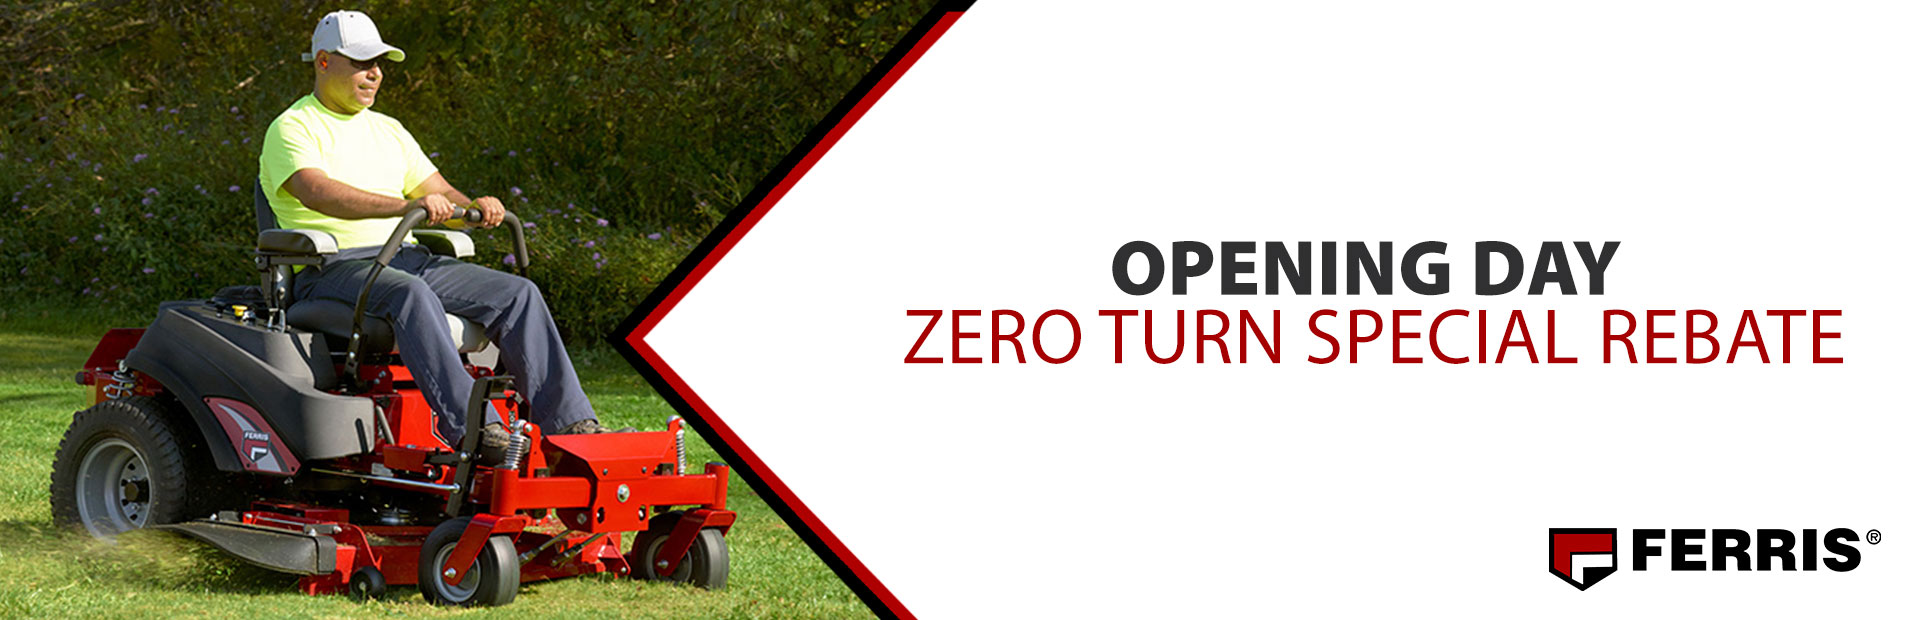 Ferris: Opening Day Zero Turn Special Rebate